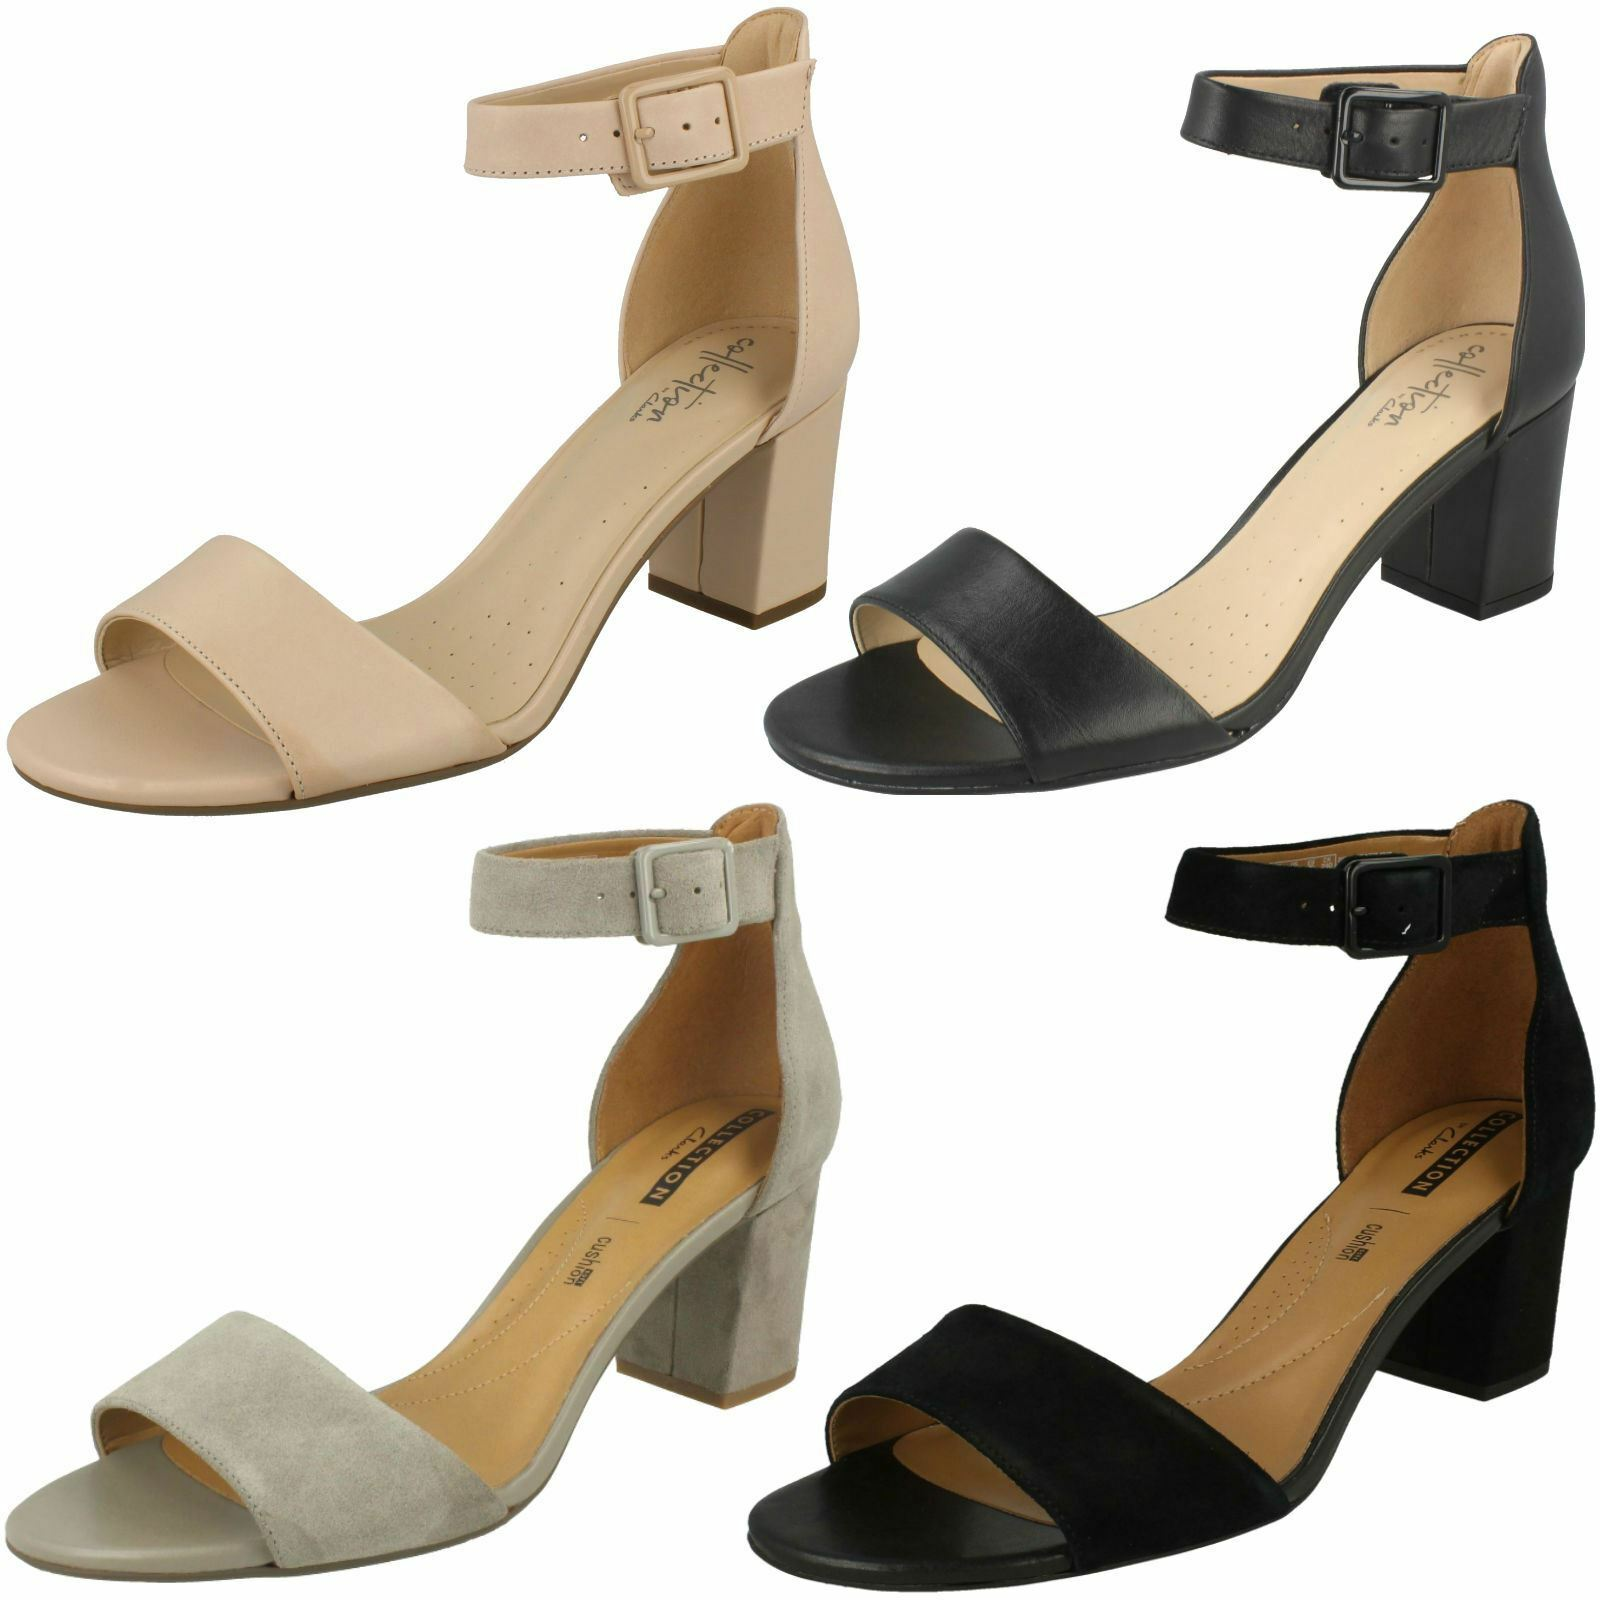 Clarks block heel women suede leather smart casual sandals ankle strap